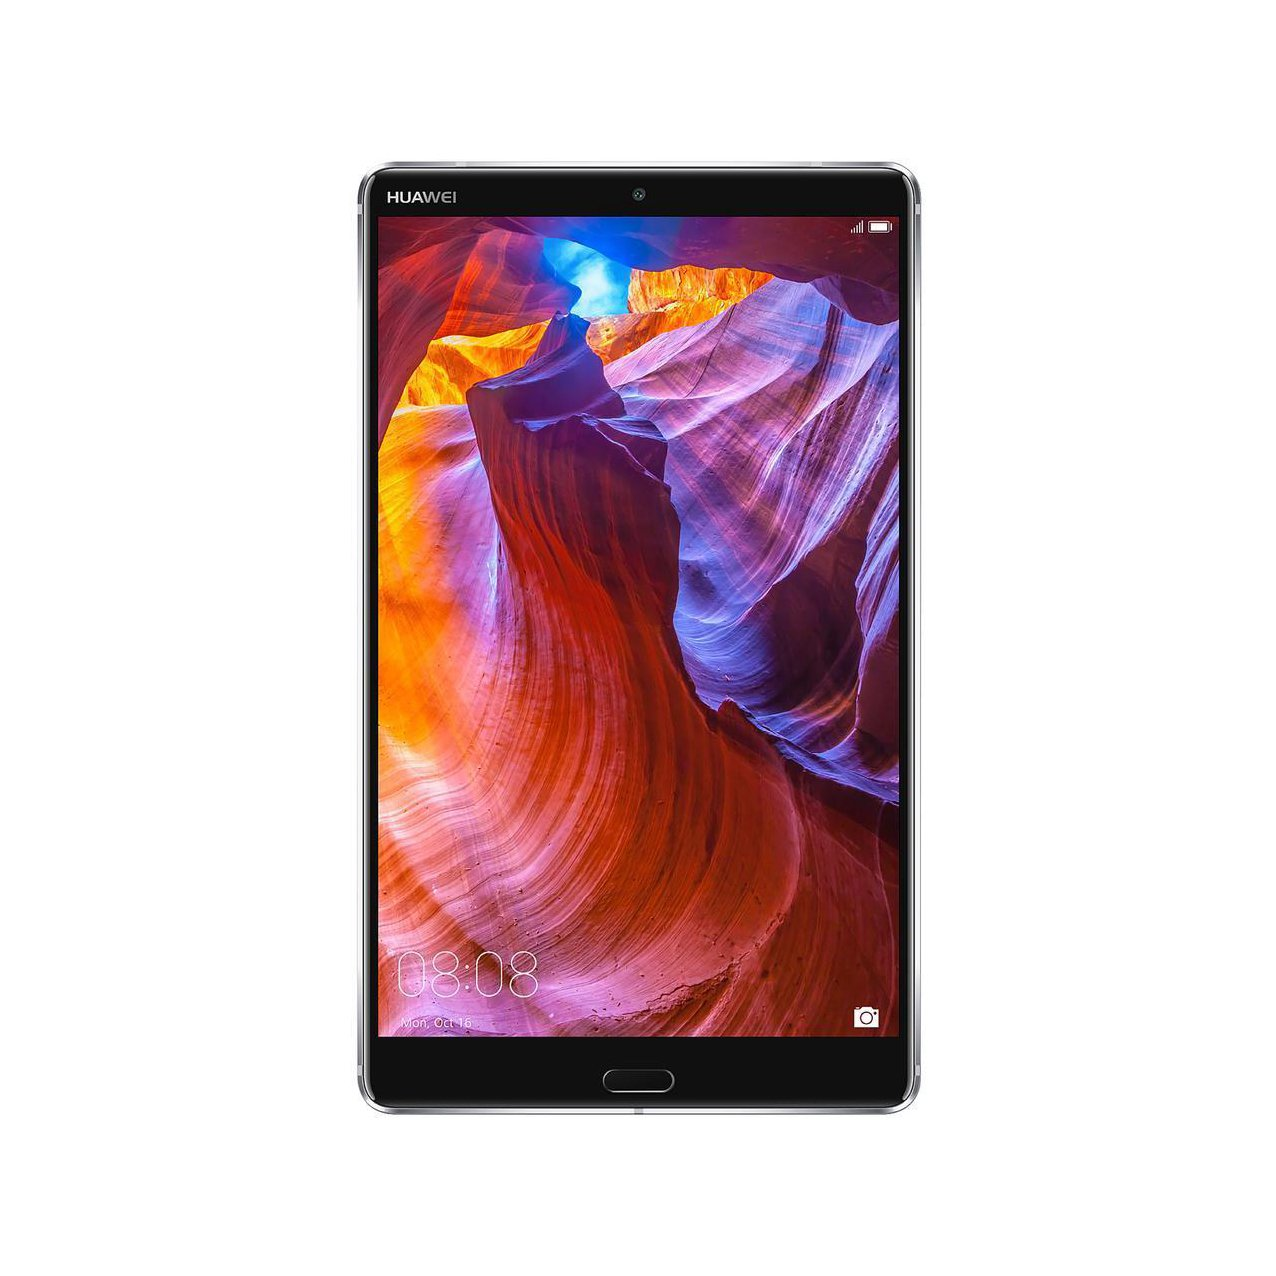 Huawei MediaPad M5 Android Tablet with 8.4'' 2.5D Display, Octa Core, Quick Charge, Dual Harman Kardon-Tuned Speakers, WiFi Only, 4Gb+64Gb, Space Gray (US Warranty)